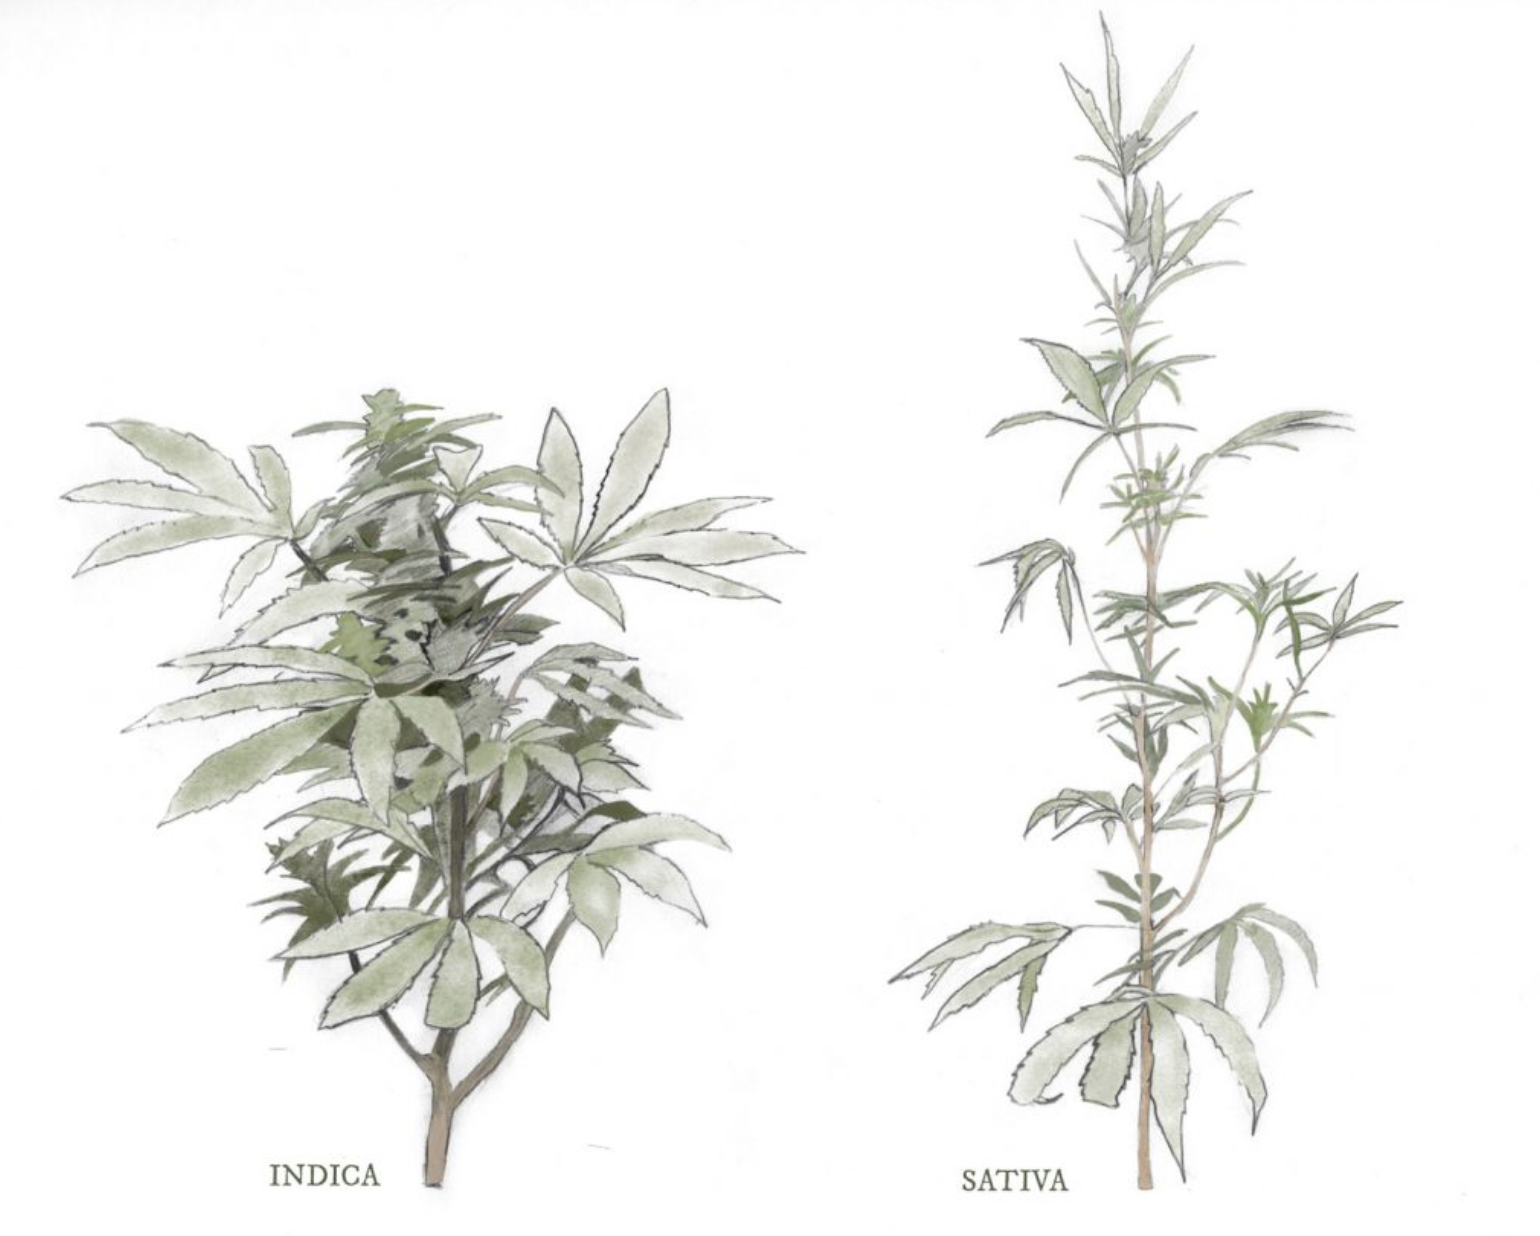 Indica vs Sativa: What the real difference is